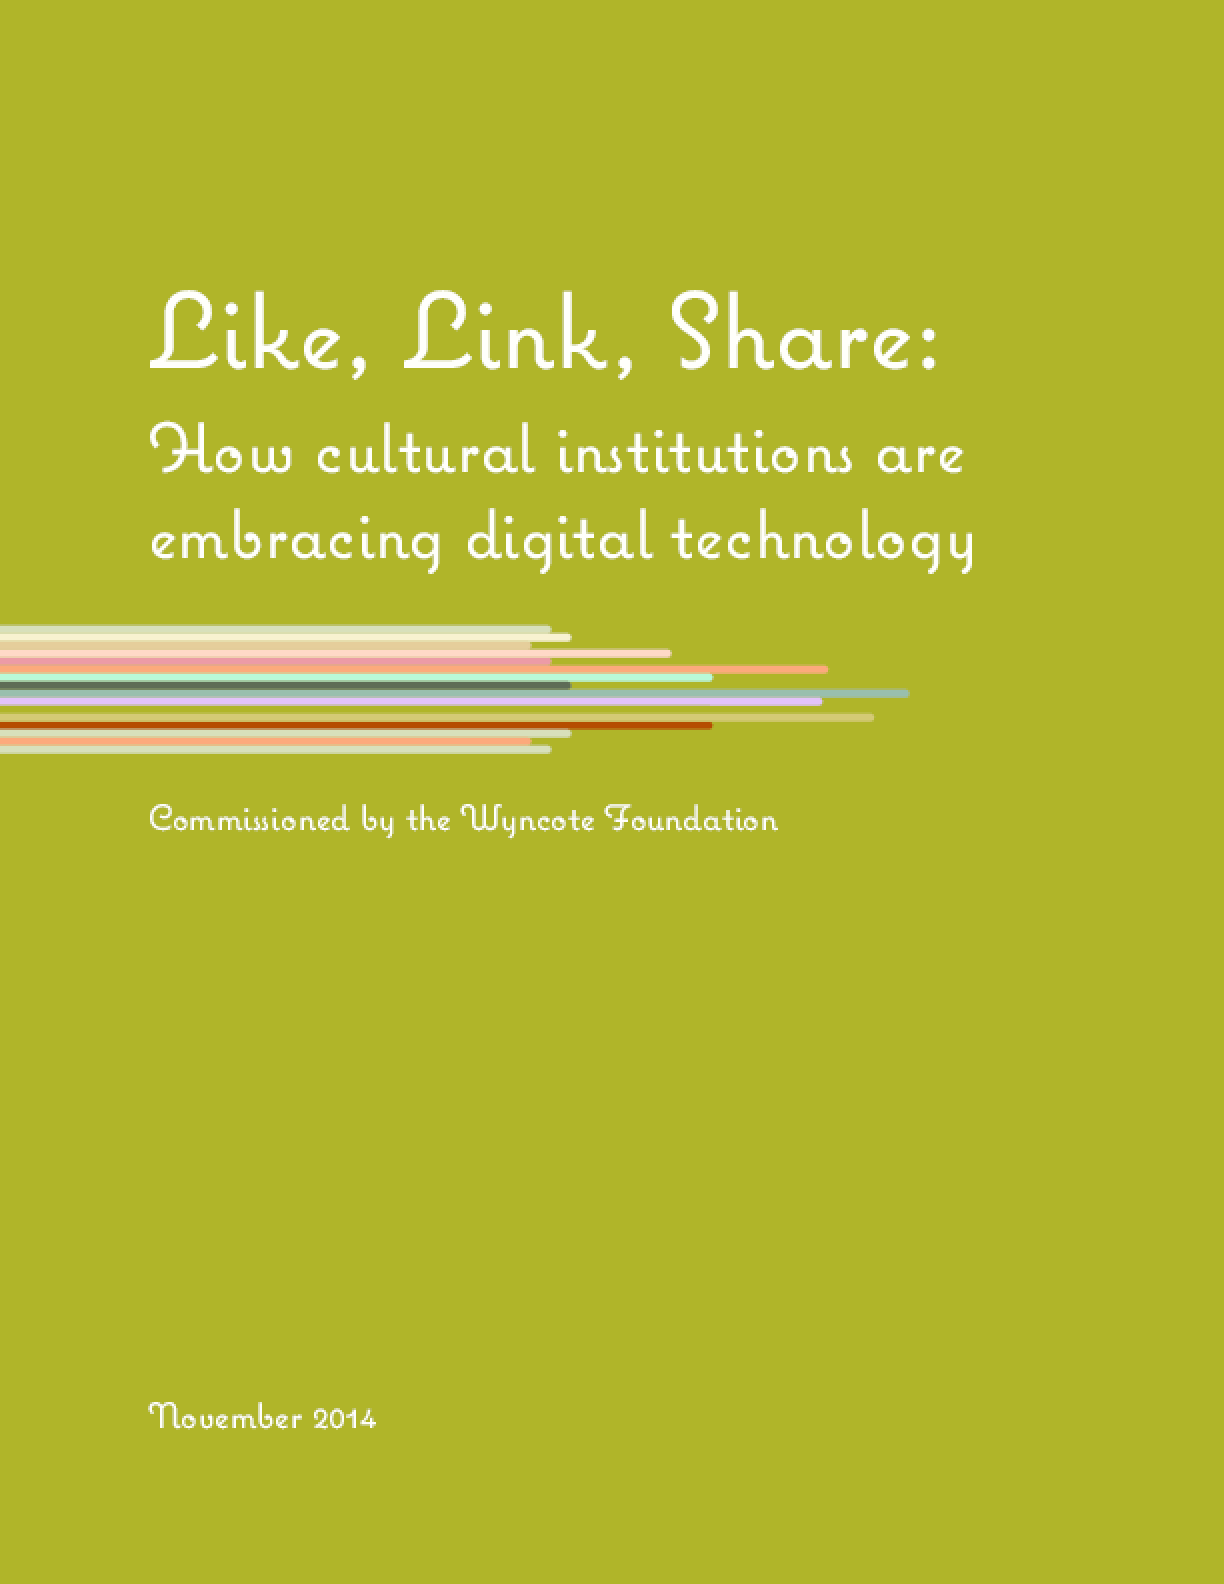 Like, Link, Share: How Cultural Institutions Are Embracing Digital Technology